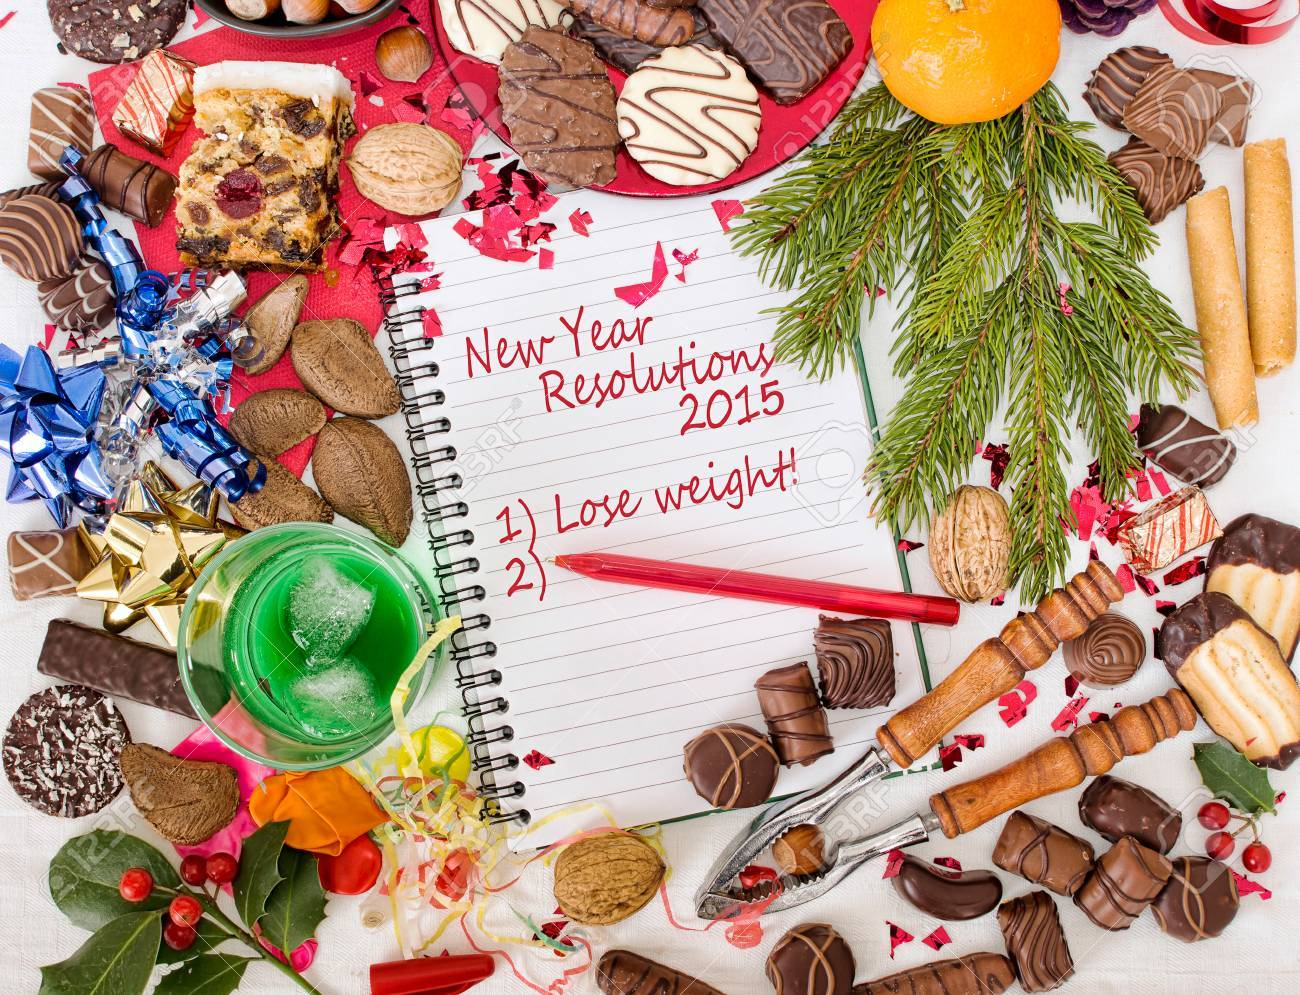 Overindulgence christmas festival followed by new year resolution overindulgence christmas festival followed by new year resolution to lose weight stock photo 30610162 ccuart Gallery